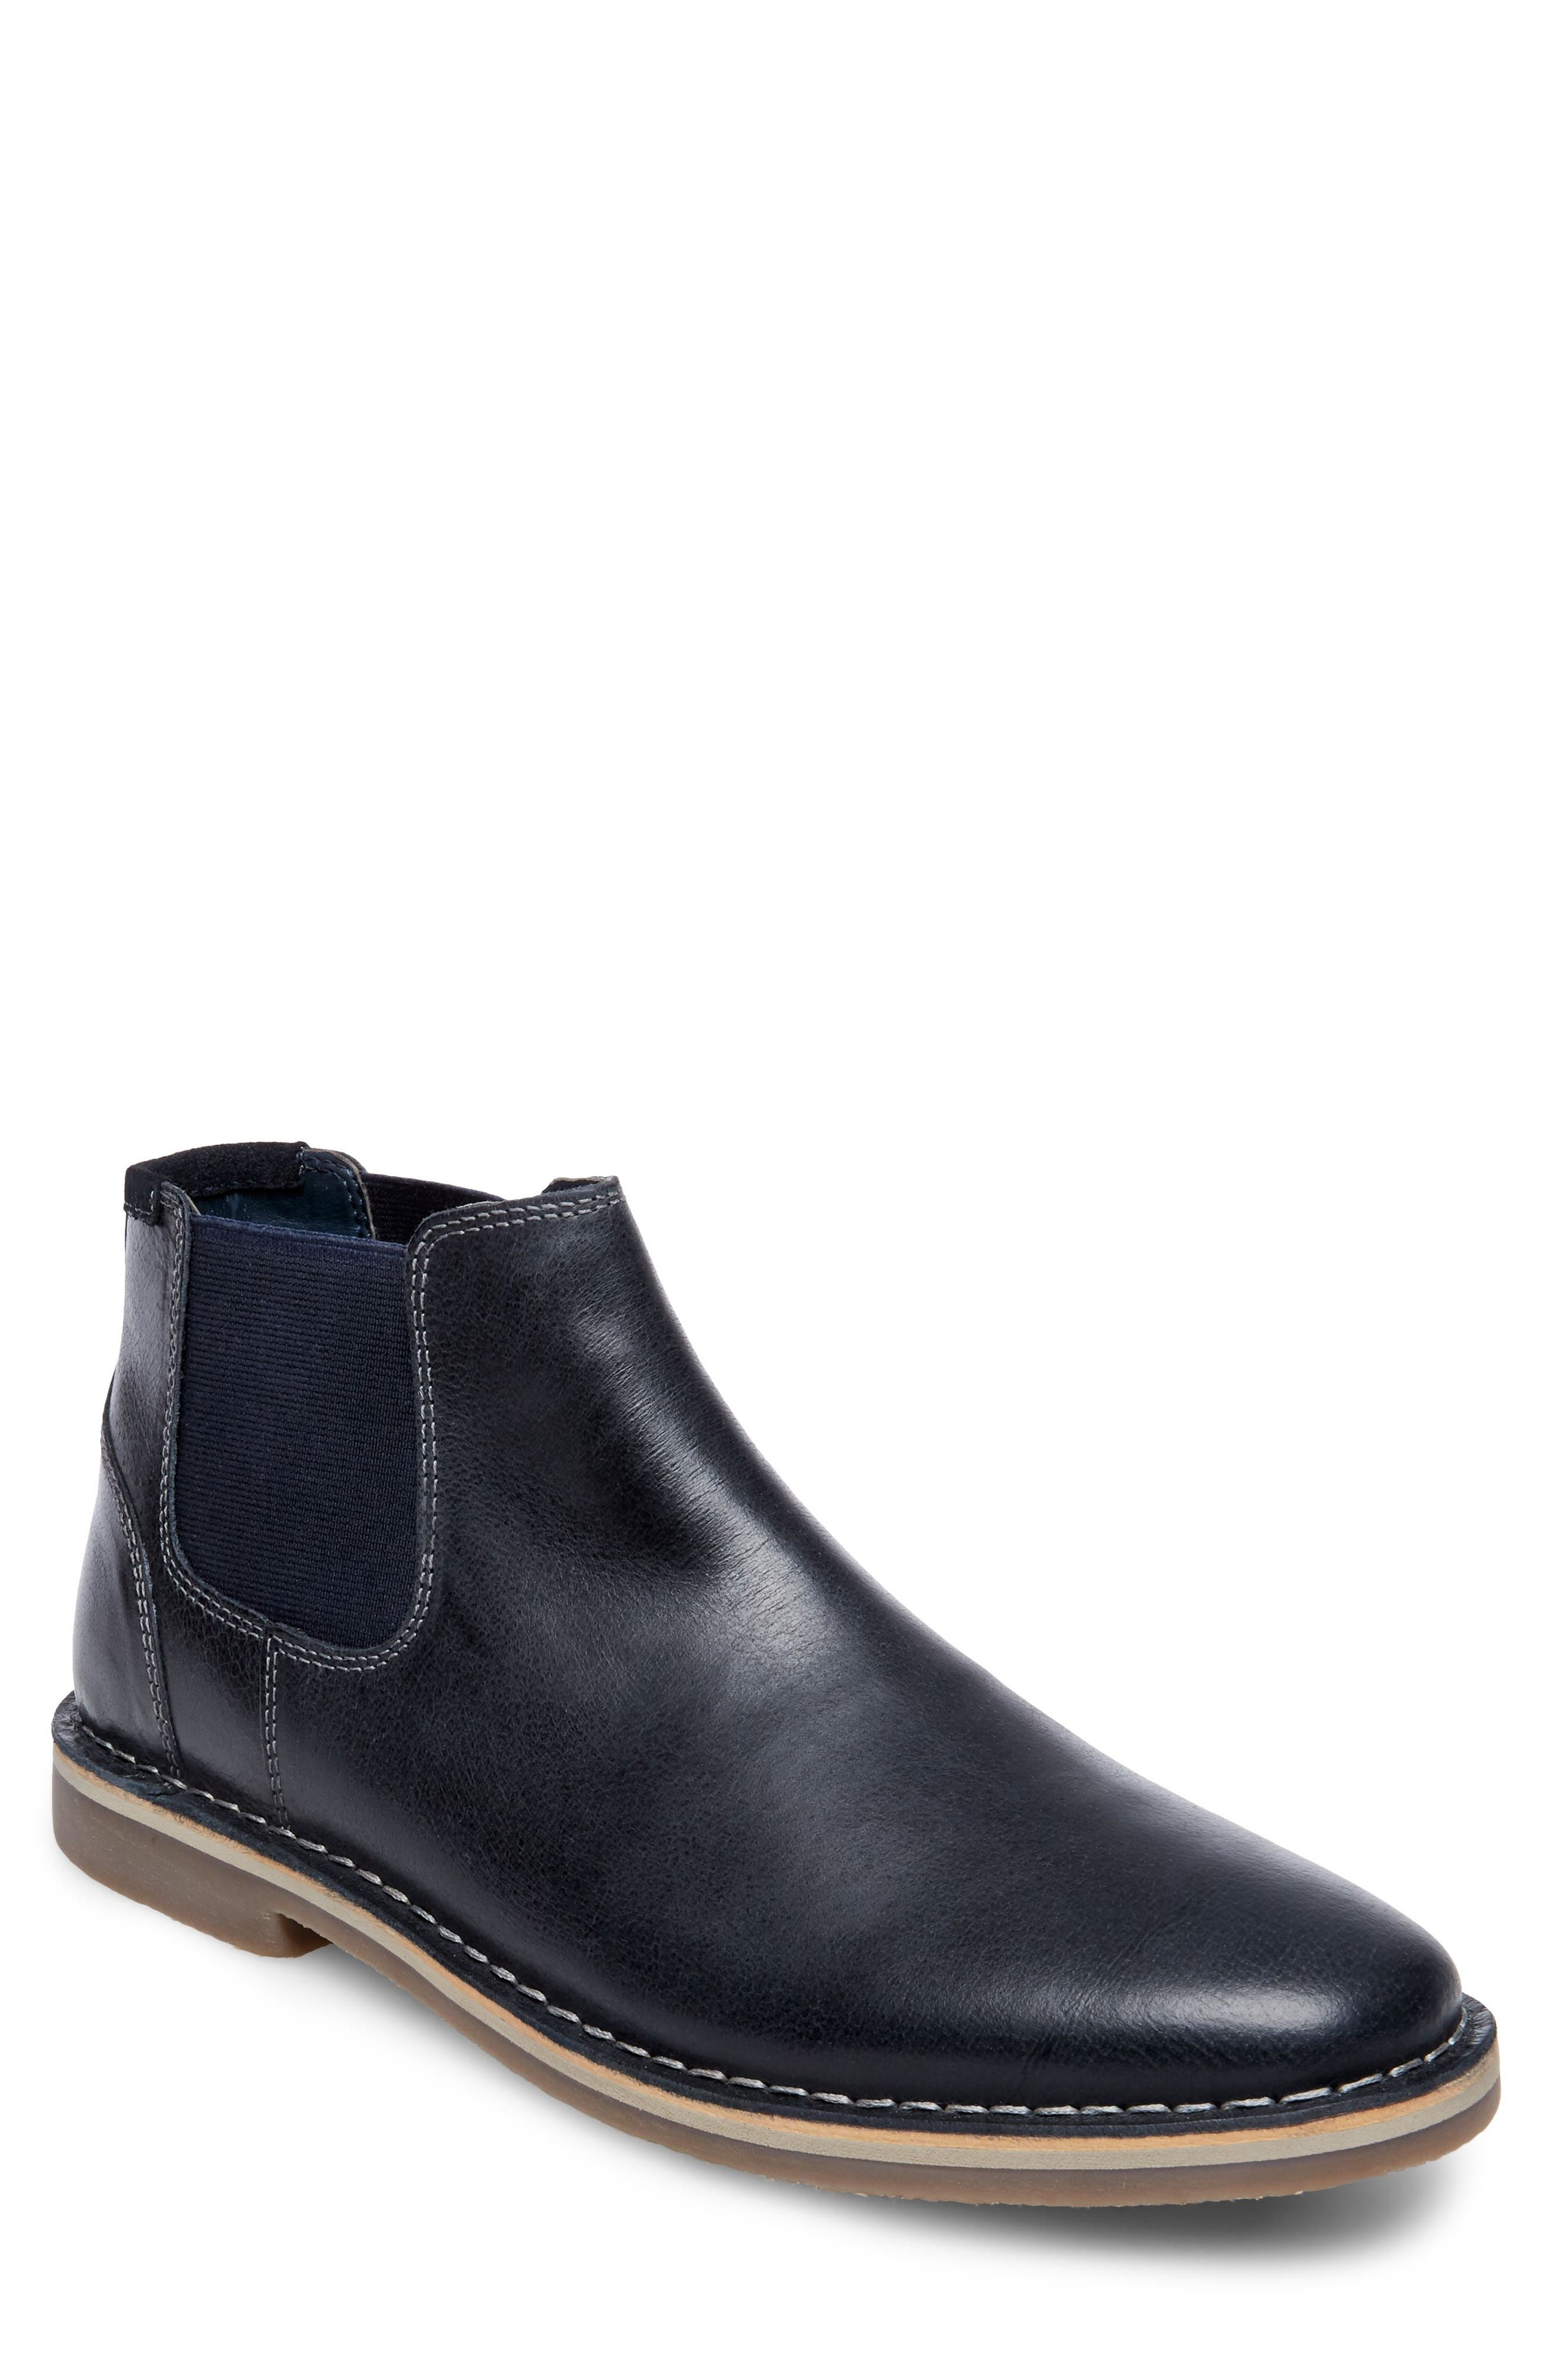 Horus Mid Top Chelsea Boot,                         Main,                         color, Navy Leather